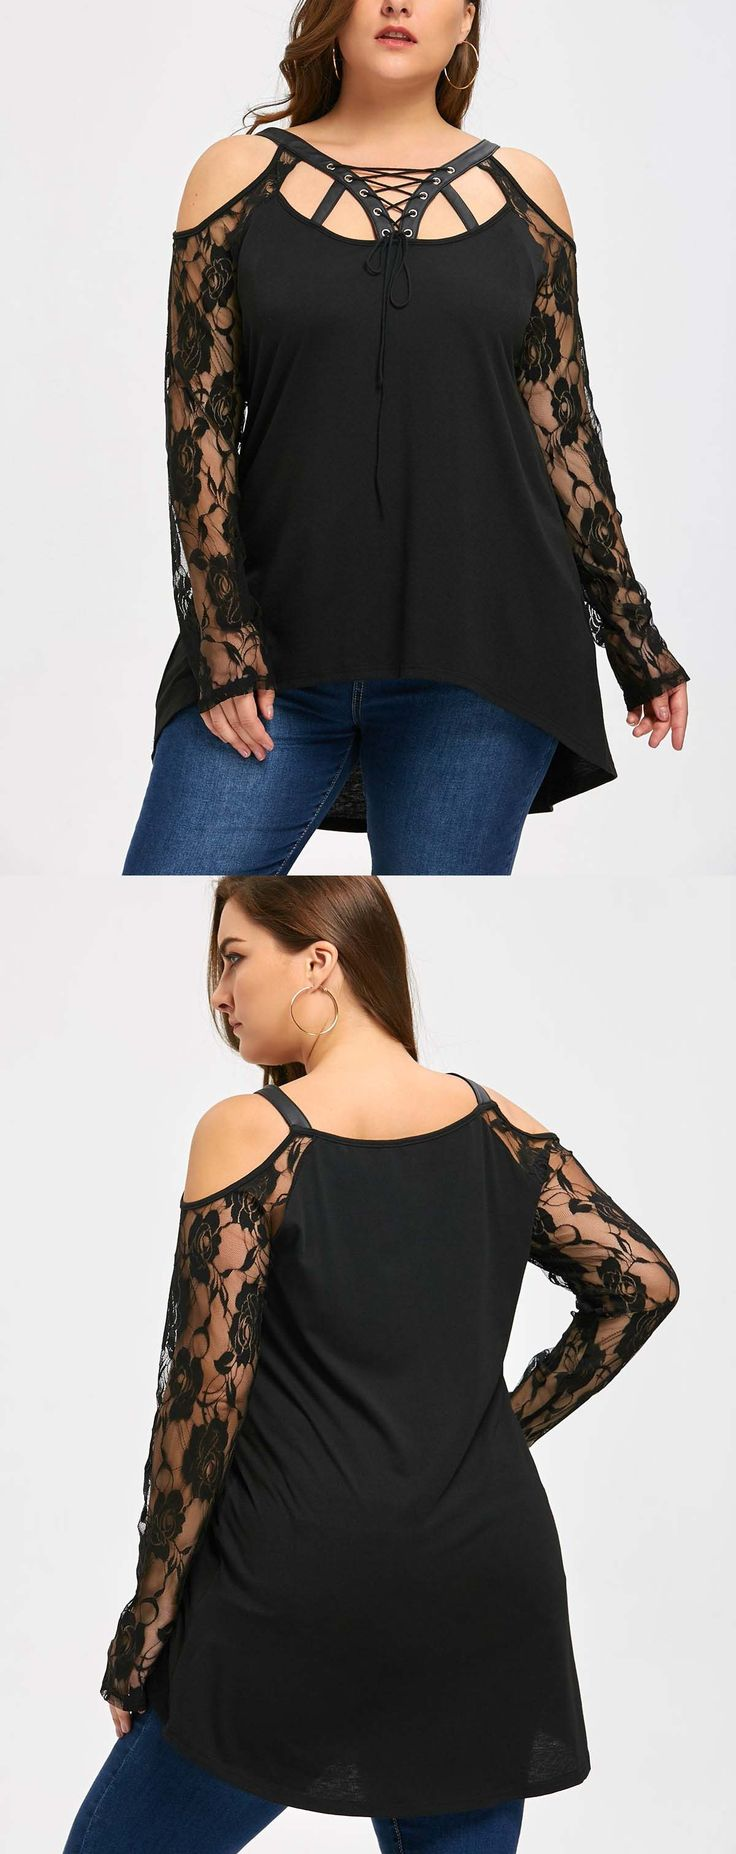 Up to 80% off,Wholesale Halloween Plus Size Cold Shoulder Lace Up . Cheap Plus Size Top And Cold Shoulder Blouse on Rosewholesale.com,lace,cold shoulder,plus size dress,rosewholesale,rosewholesale.com,suppliers,wholesale boutique clothing suppliers,wholesale,black, fall, fall fashion,fall outfits,fall nails,fall decor ideas,fall fashion 2017,plus size fashion for women,chrismas outfit,Christmas Red,christmas dress for women,girls christmas dresses,christmas clothes for women,$11.79